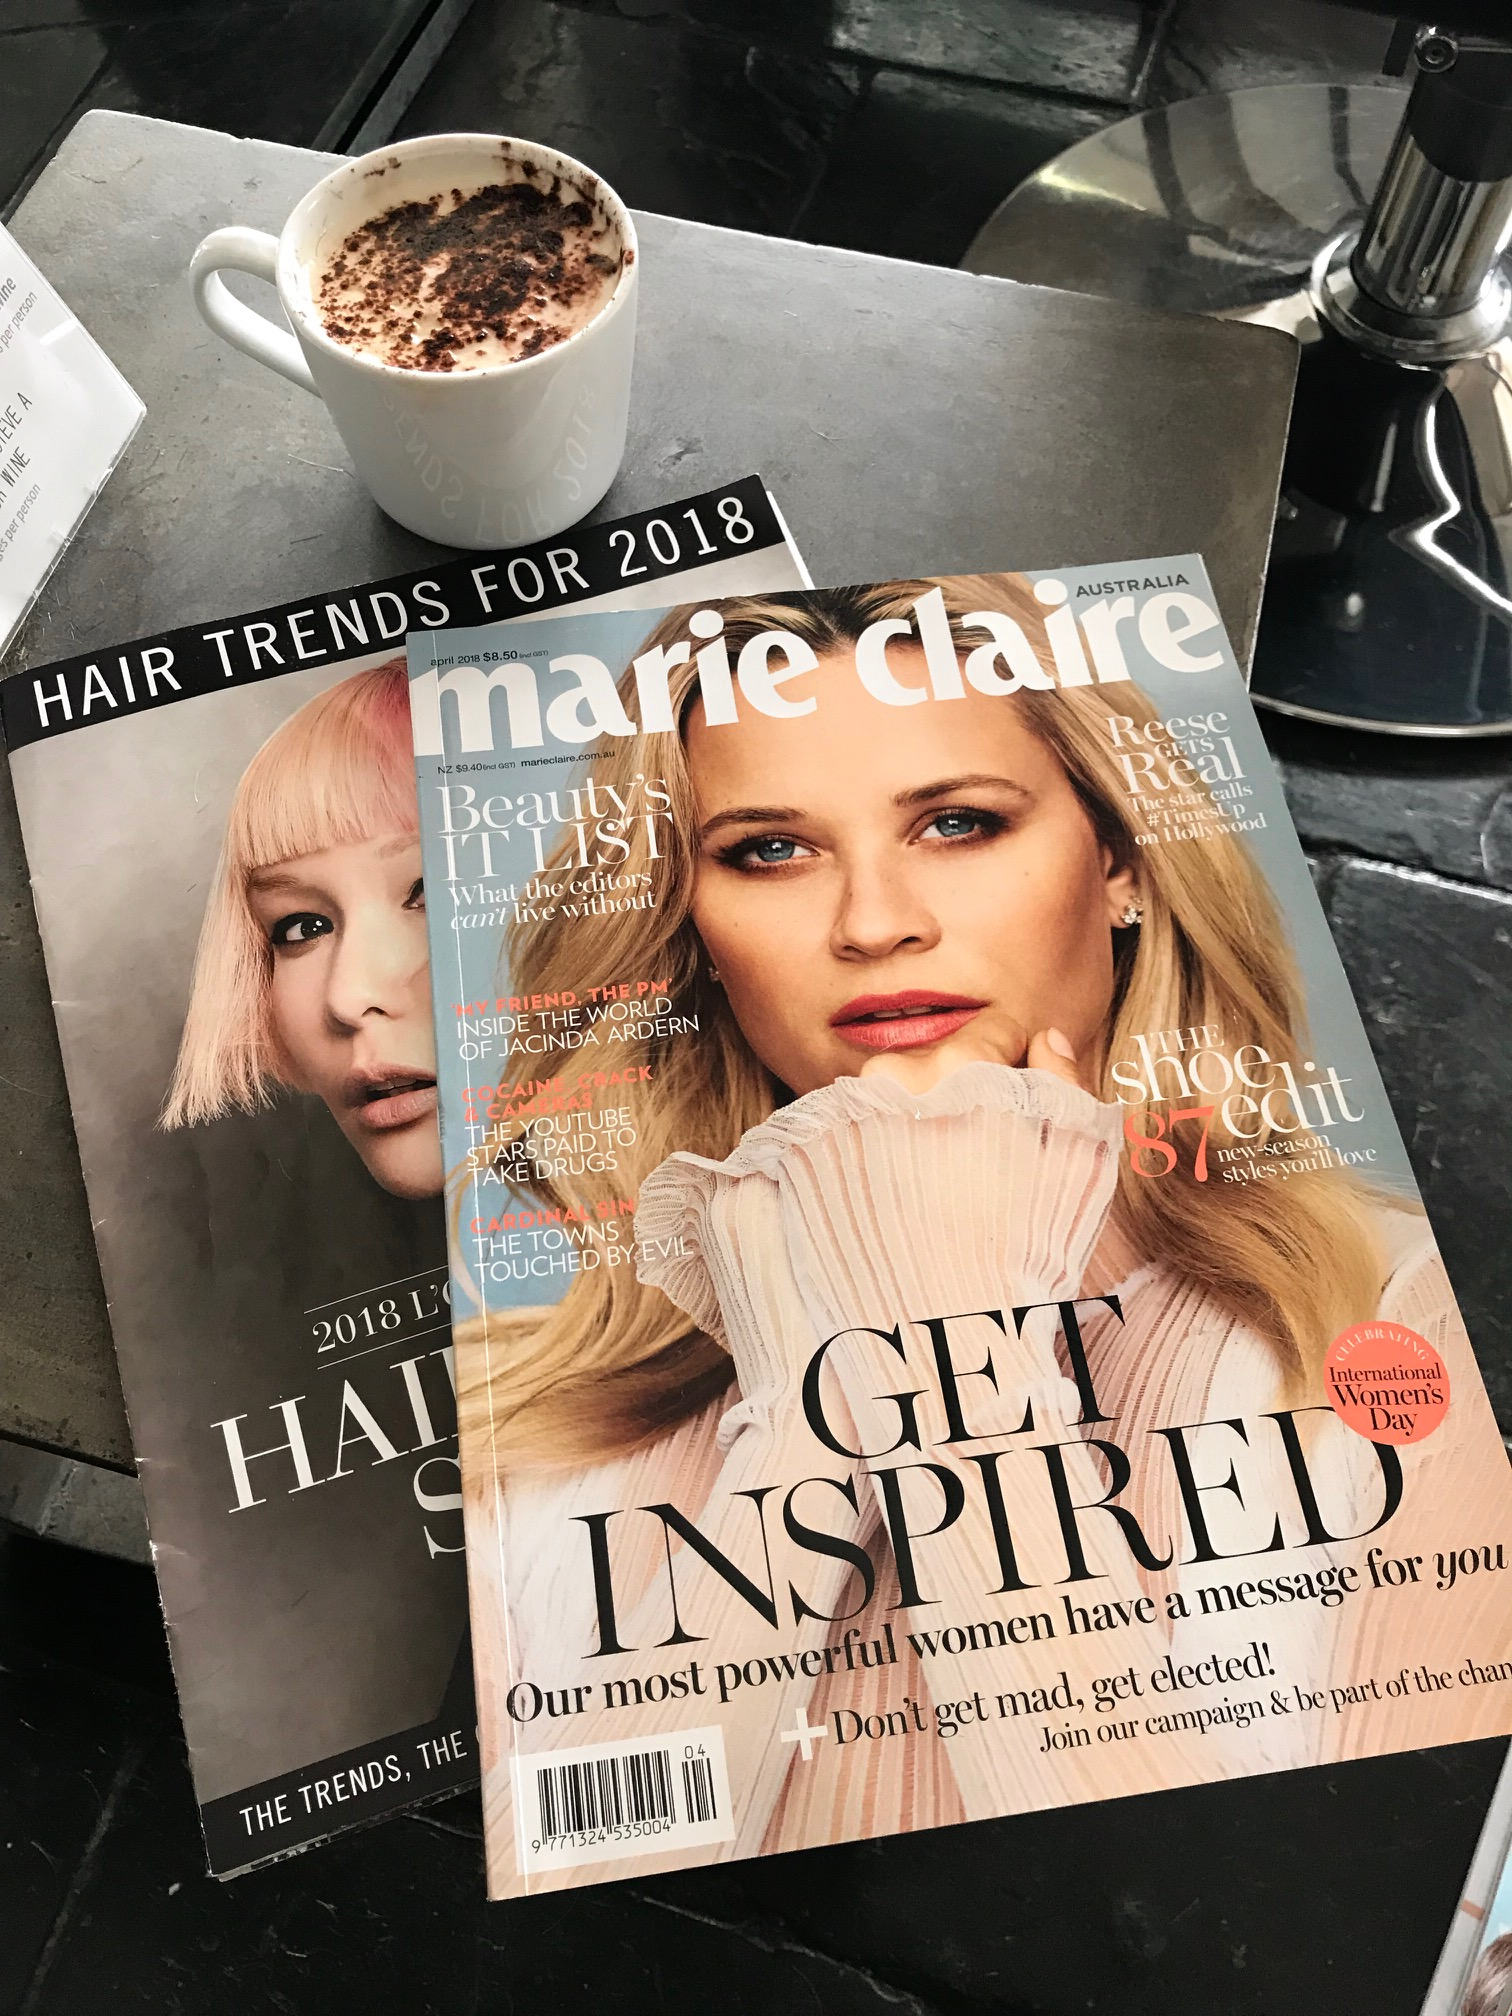 Marie Claire 2018 Hair Trends featuring FÖN SALÖN